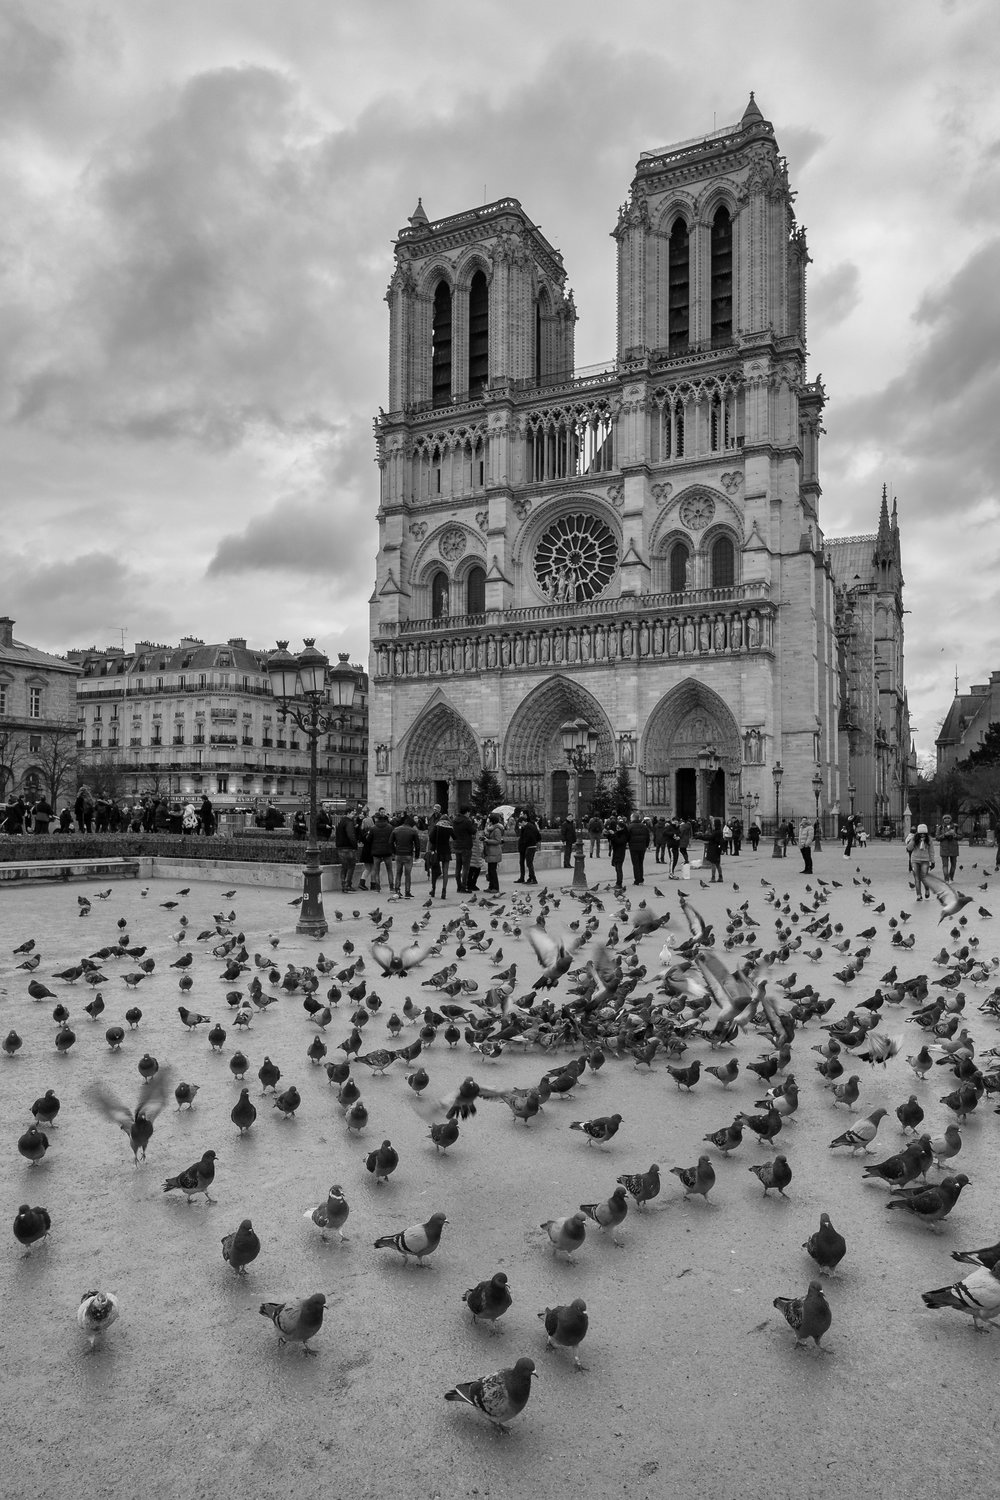 """Flock of tourists."" January 14, 2017. Cathedral Notre Dame. Paris, France Fujifilm X-Pro1, 14mm, f/8, 1/125, ISO 640"